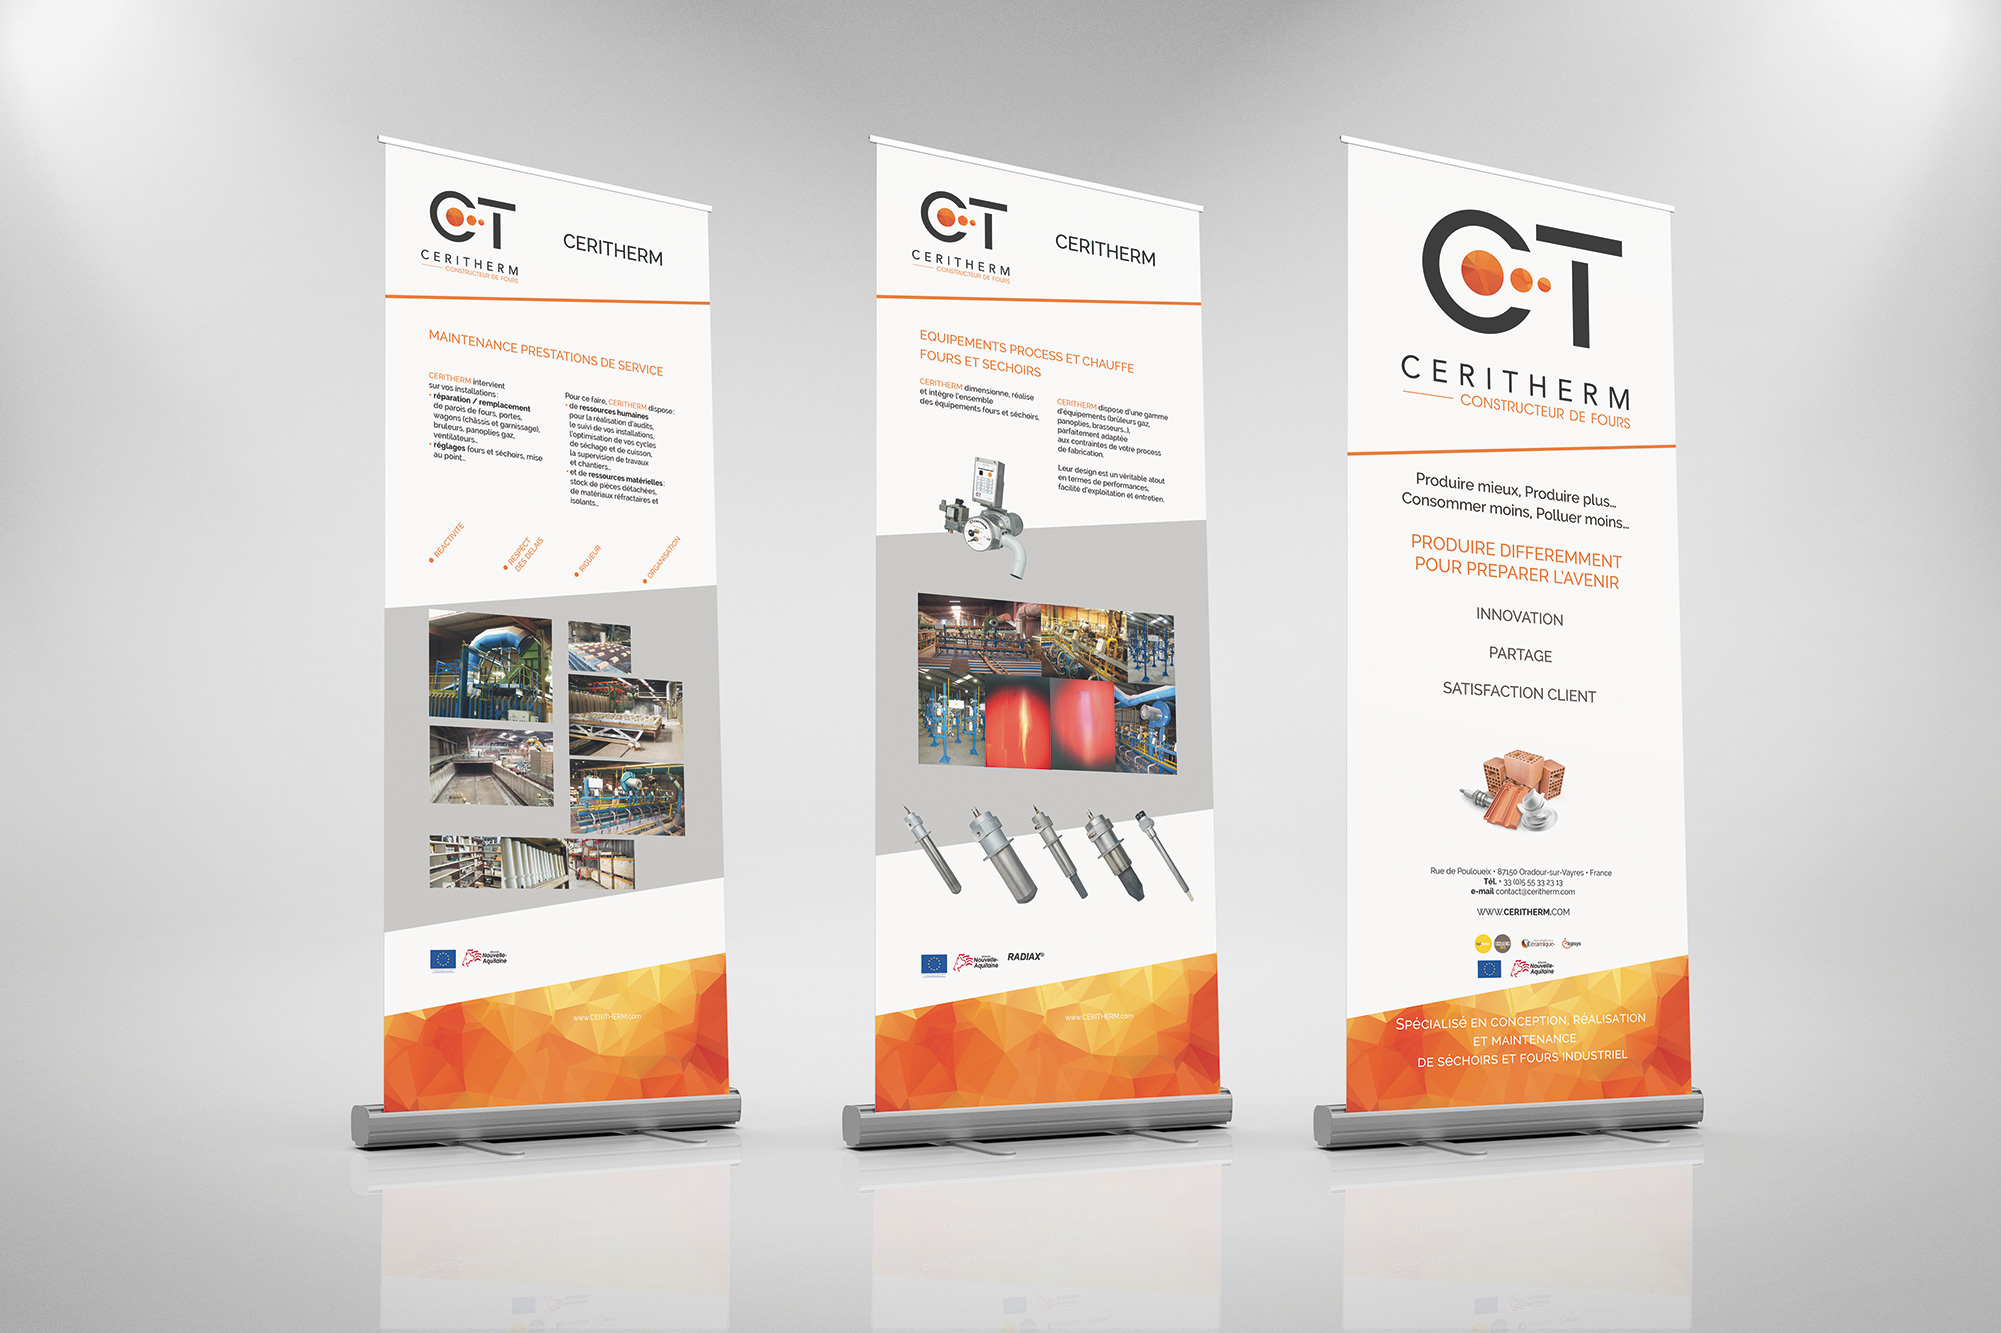 Roll-up Ceritherm